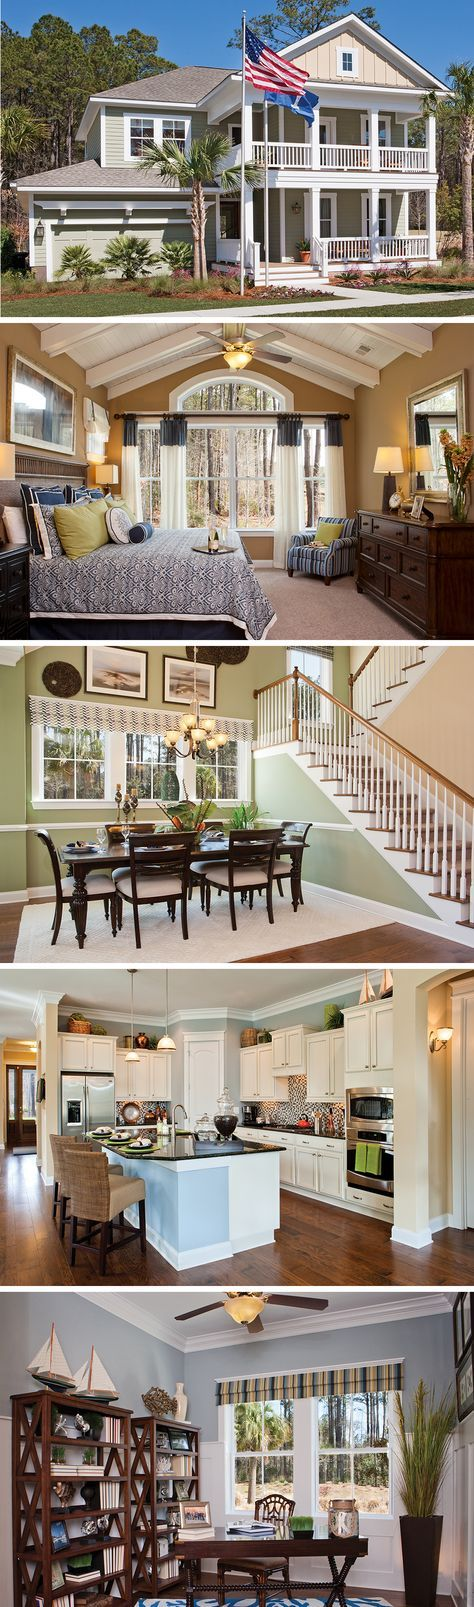 The Whitham by David Weekley Homes in Carolina Park is a 5 bedroom home that features hardwood floors, lots of natural light and a large covered porch. Custom home options include a screened in porch, a fireplace, or rustic chic beams in the owners retreat.